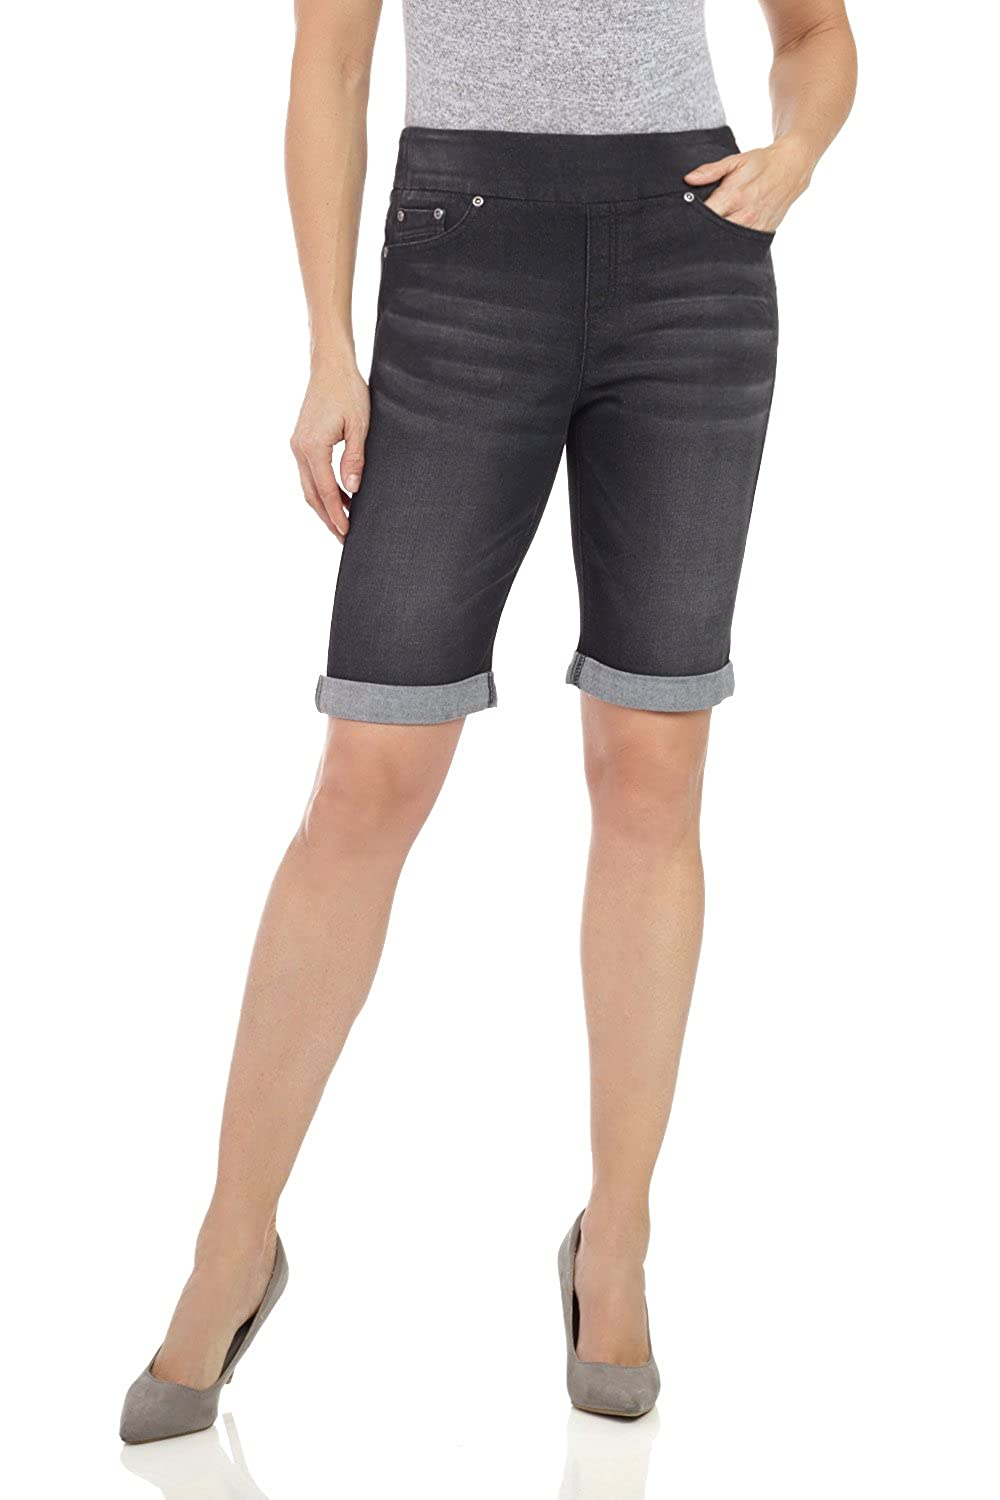 6fe635e534d Rekucci Women s Ease in to Comfort Fit Stretch Jean Bermuda Short W Cuff at  Amazon Women s Clothing store